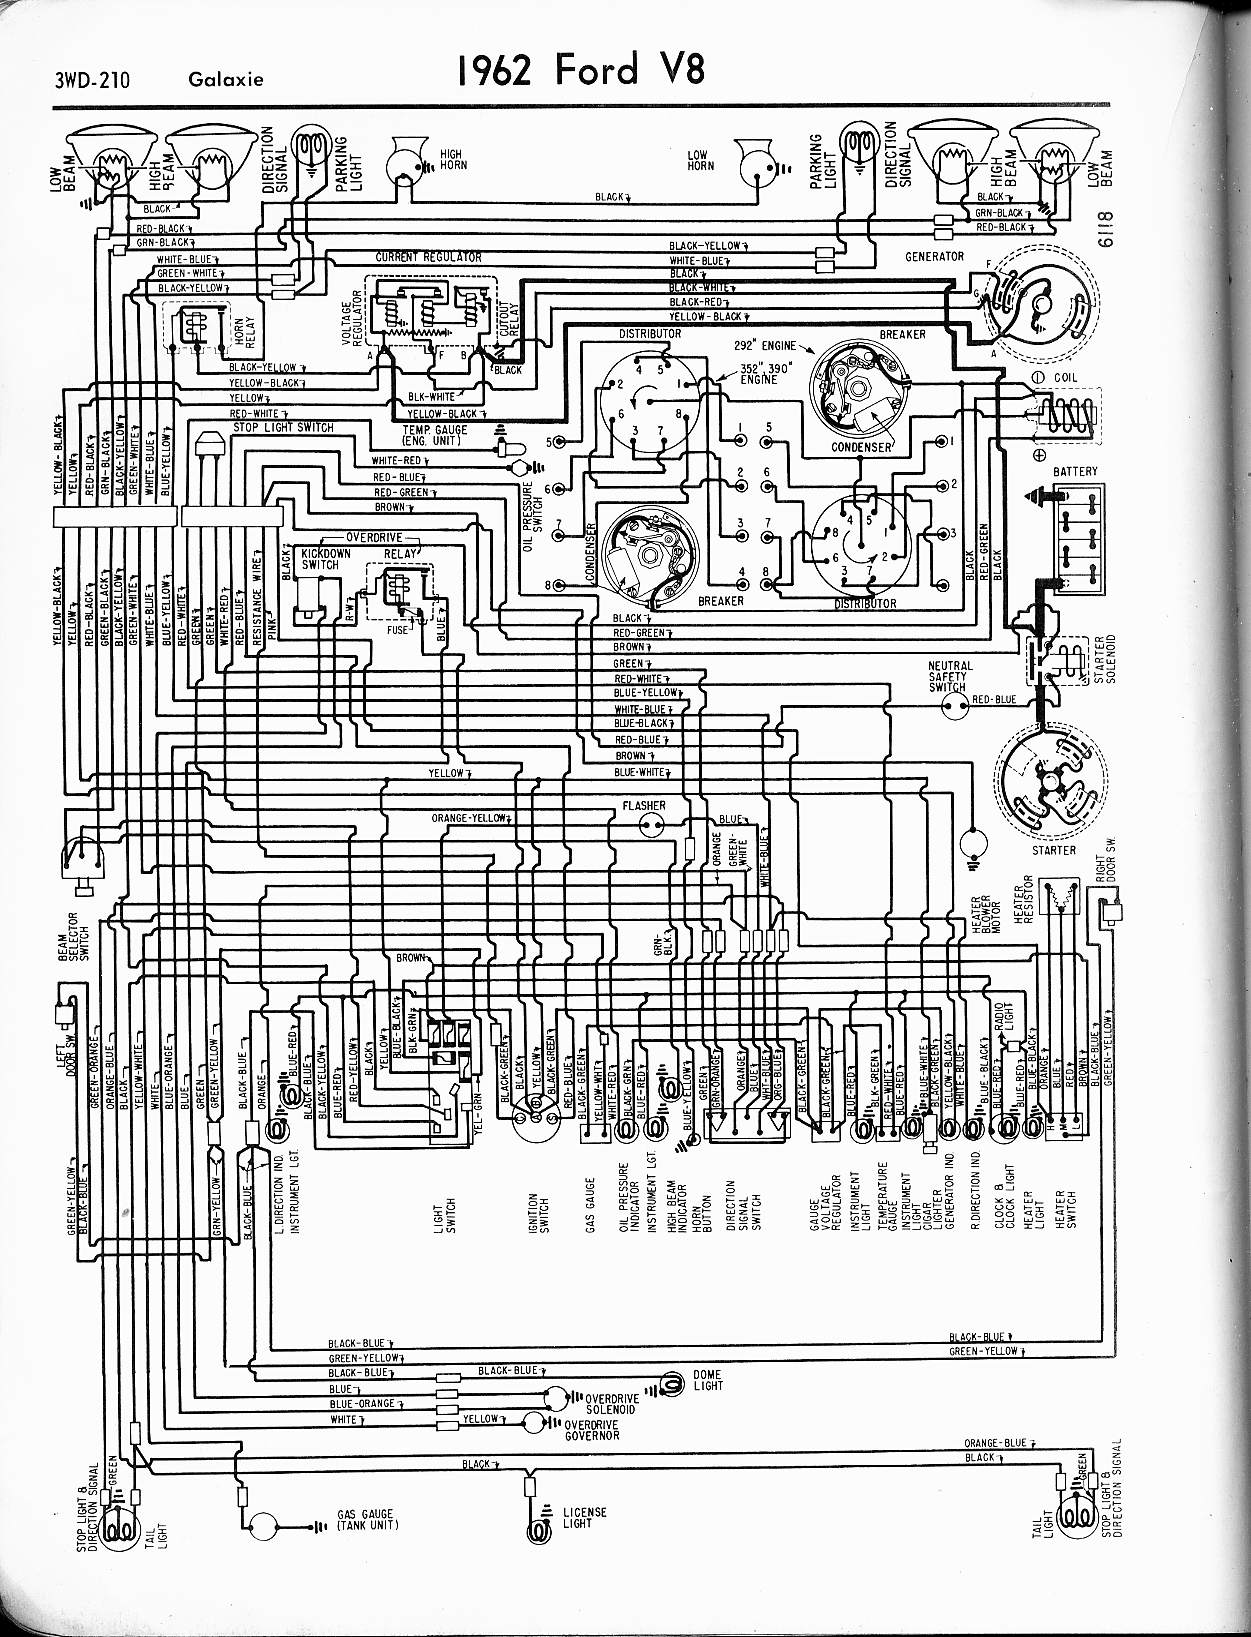 57-65 Ford Wiring Diagrams on 1978 ford truck wiring diagram, 56 ford truck wiring diagram, 1973 ford wiring diagram, 1976 ford ignition wiring diagram, ford ignition switch wiring diagram, 1979 ford f-150 wiring diagram, 65 ford pickup 4x4, 65 ford truck parts, 65 chevelle wiring diagram, ford tractor starter solenoid wiring diagram, 1953 ford wiring diagram, 1966 ford wiring diagram, 65 ford f-250, 1954 ford wiring diagram, 1968 ford f-250 wiring diagram, 65 mustang engine diagram, 65 ford steering column wiring, ford f150 wiring diagram, 1957 ford wiring diagram, 1965 ford wiring diagram,